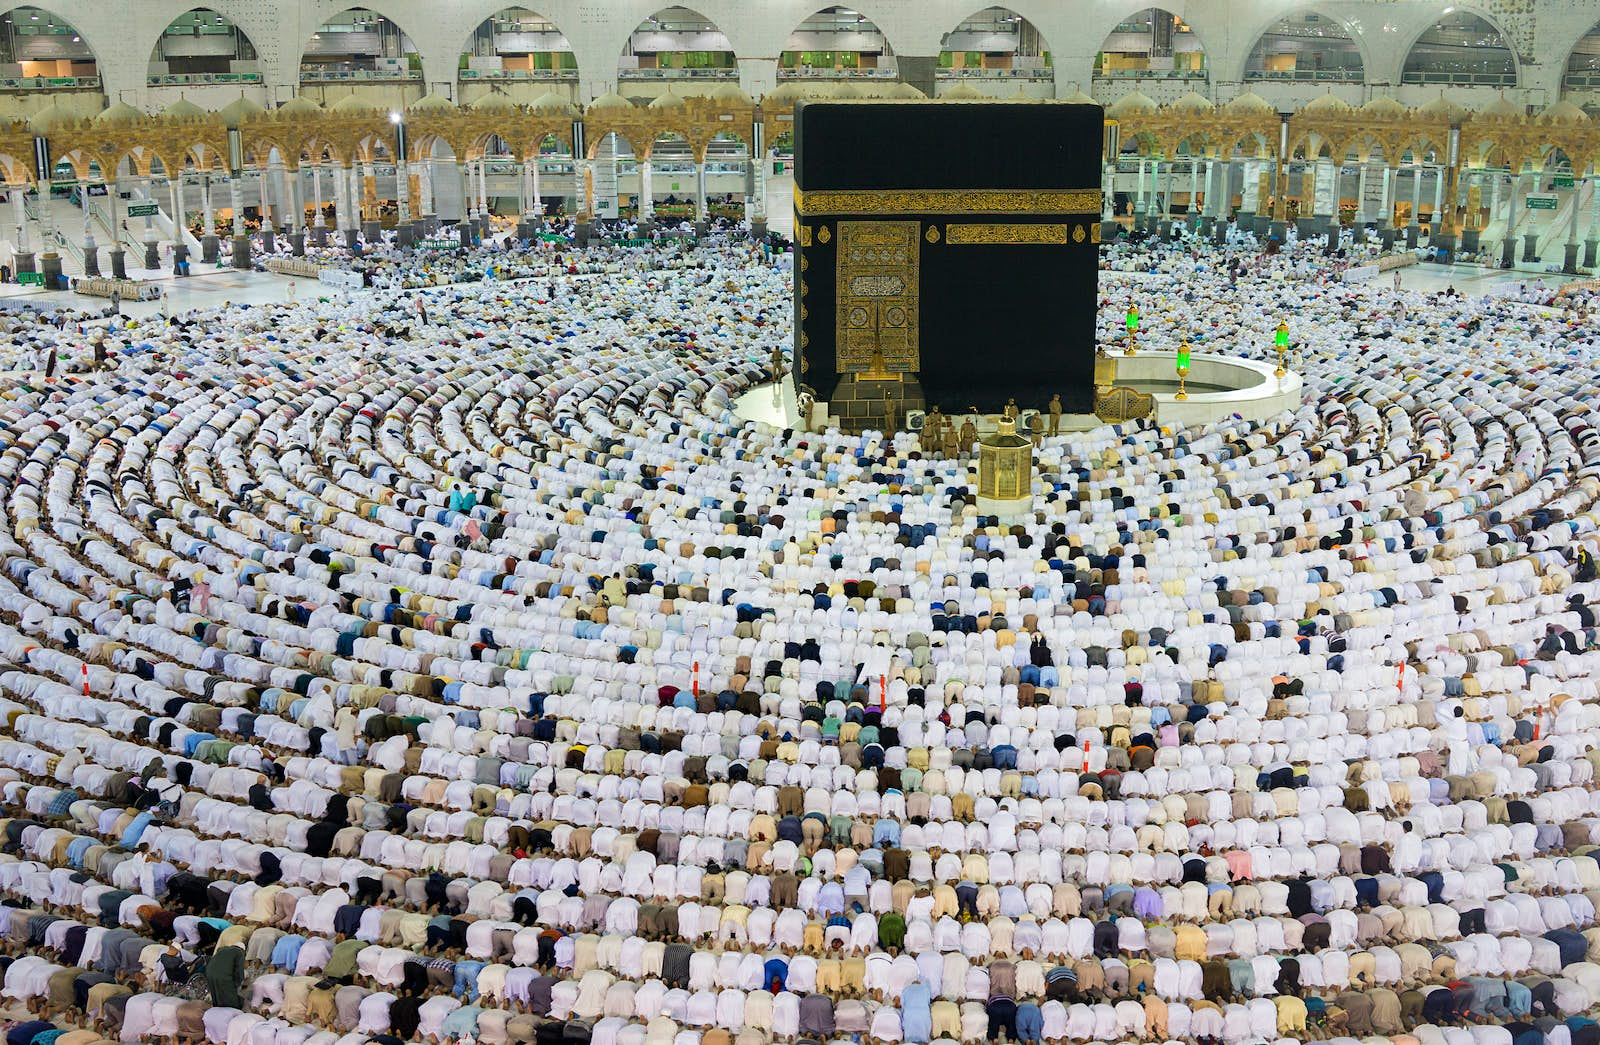 Thousands of Muslims are kneeling in concentric circles around the Kaaba at the The Great Mosque in Mecca. The Kaaba is a large black stone cube with ornate gold details. The majority of the worshippers are wearing white.